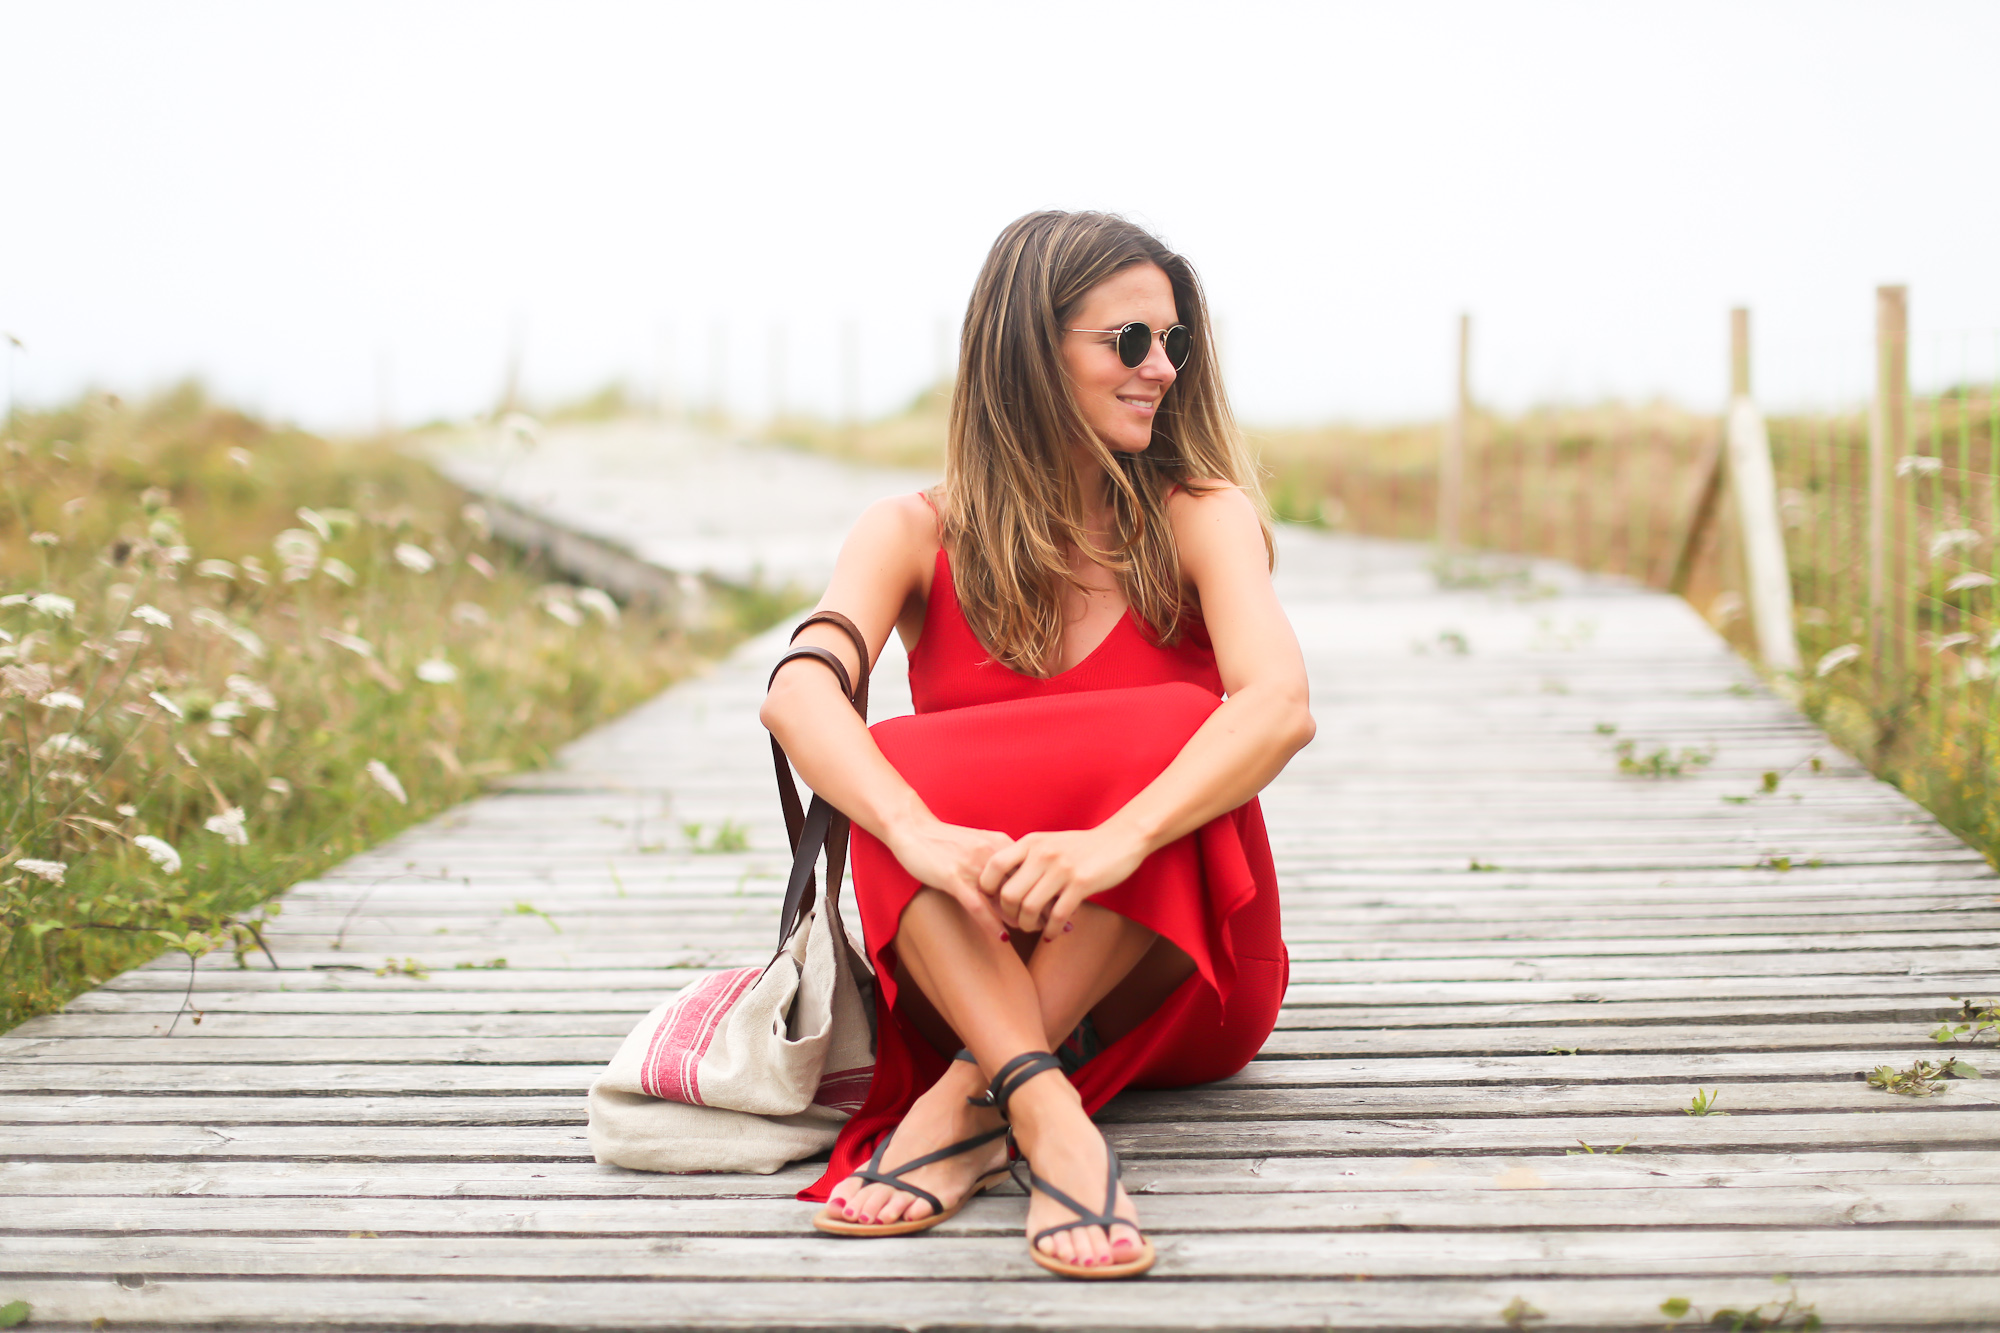 Clochet_streetstyle_zara_limitededition_red_knitdress_artemisia_roman_sandals_maternity_pregnantstyle-6